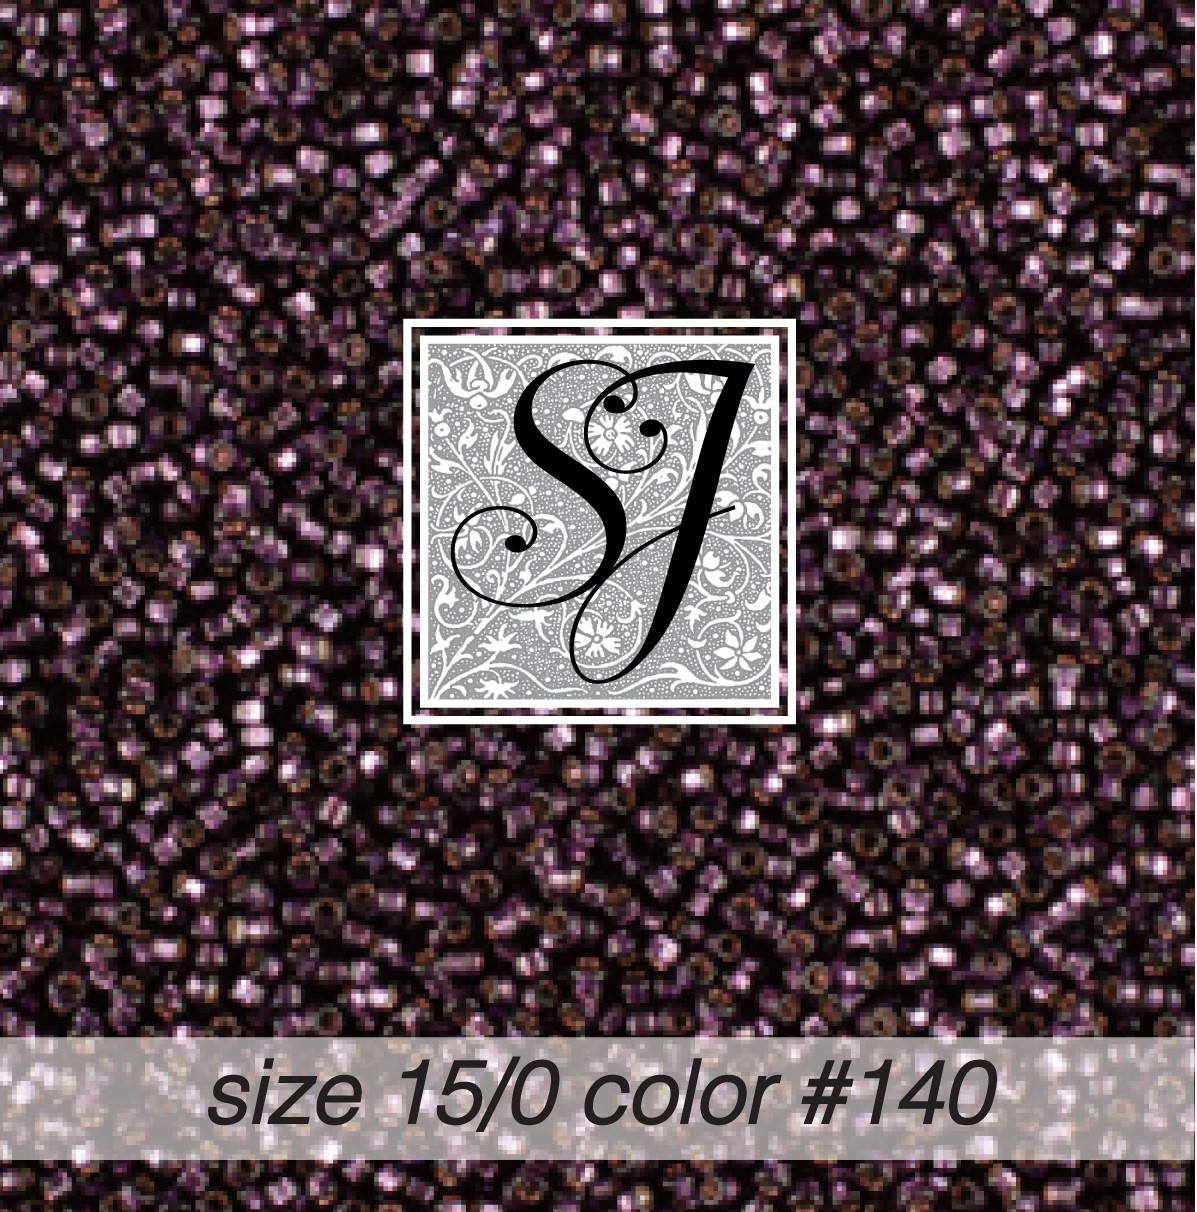 140 Eggplant Silver Lined 15/0 Seed Bead